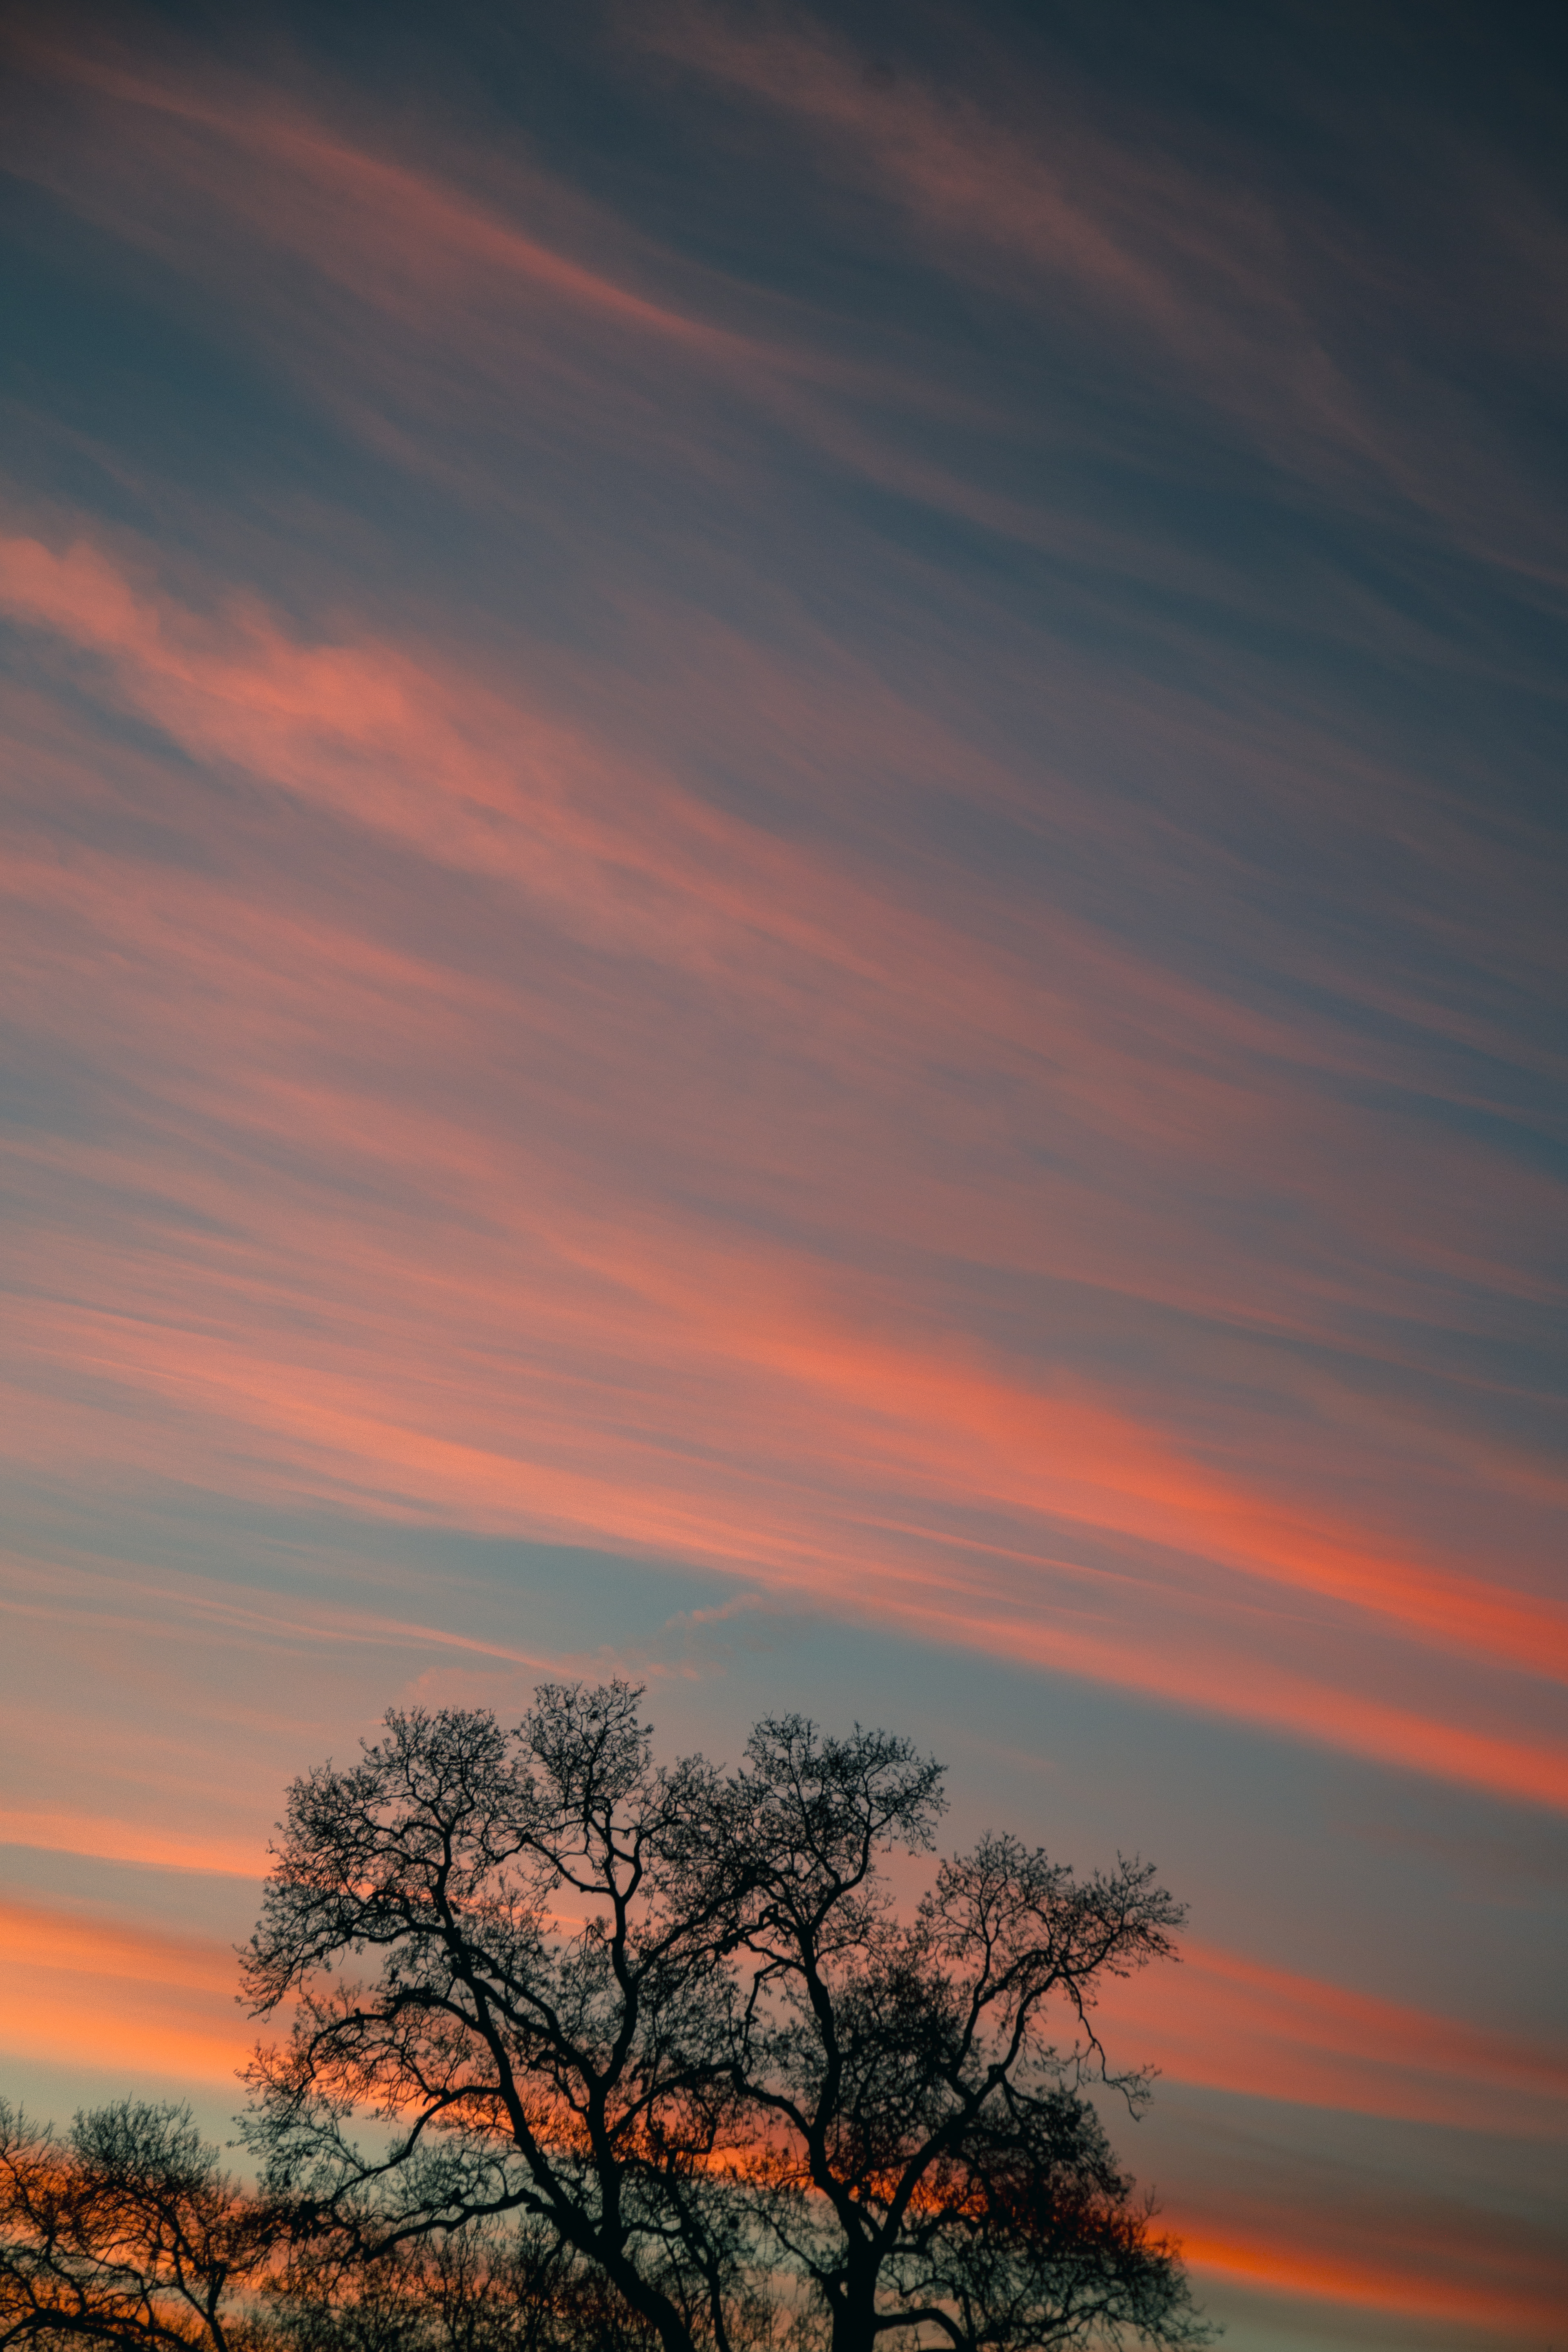 154809 download wallpaper Nature, Wood, Tree, Branches, Sky, Clouds, Sunset, Stripes, Streaks screensavers and pictures for free